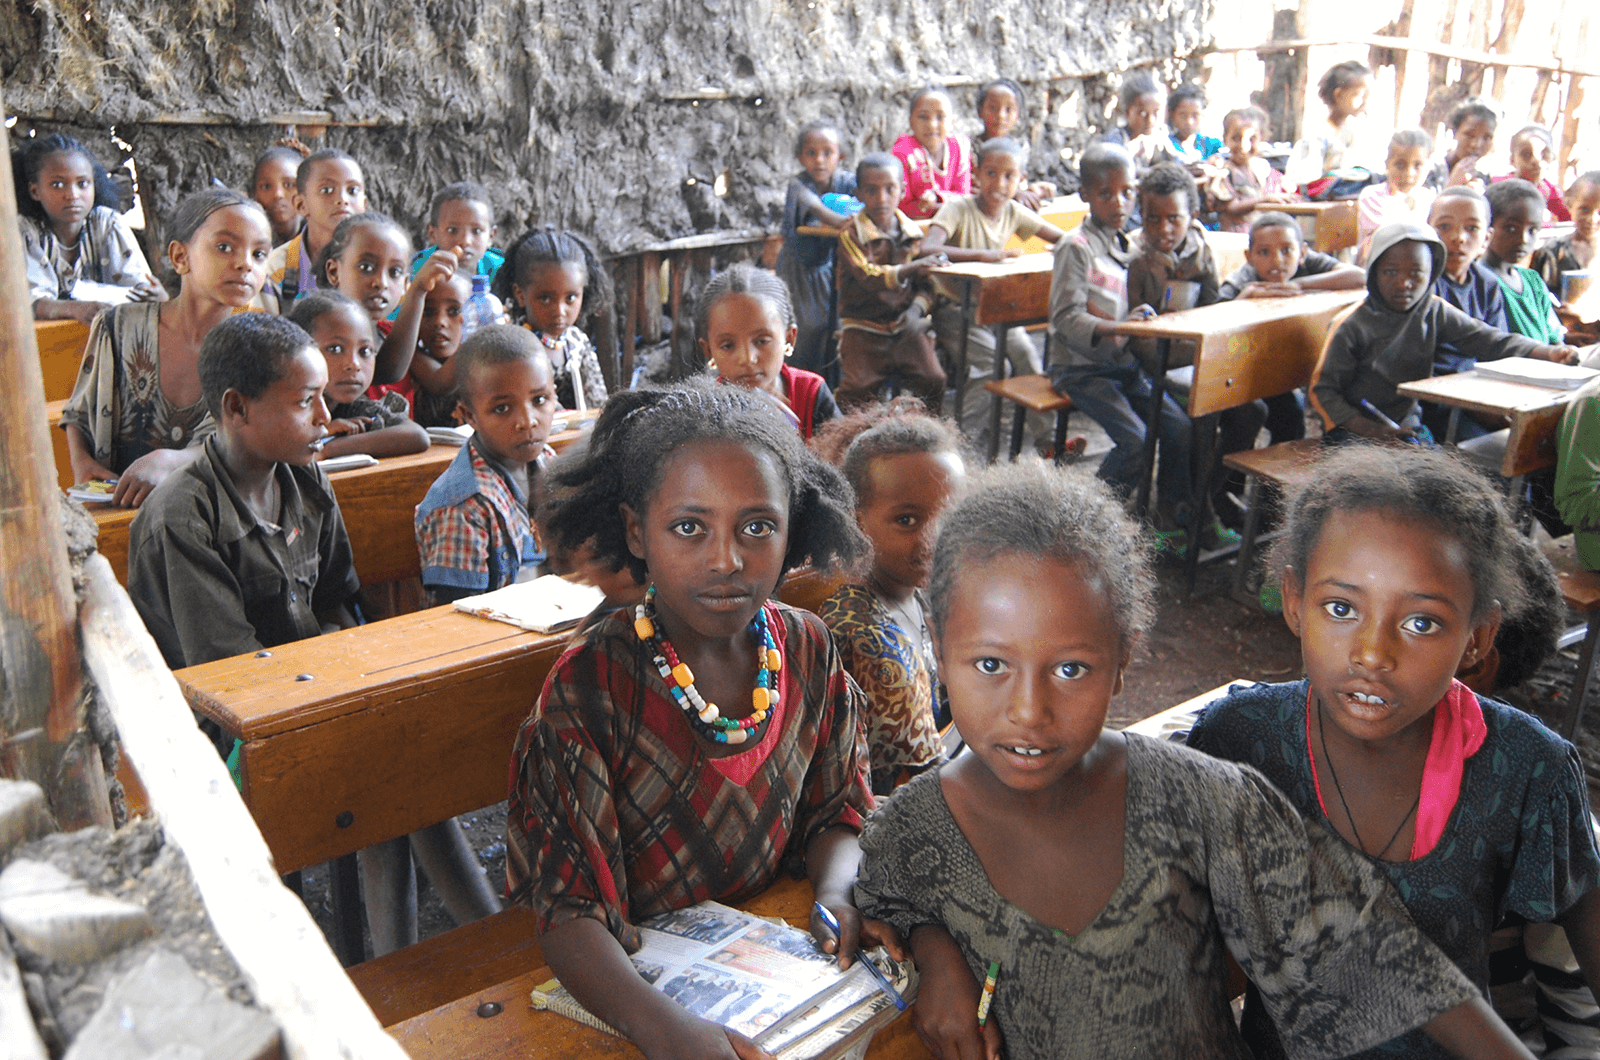 Children look at the camera at the rural school Toastmaster Lesley Stephenson and her team rebuilt in Mehoni, Ethiopia.